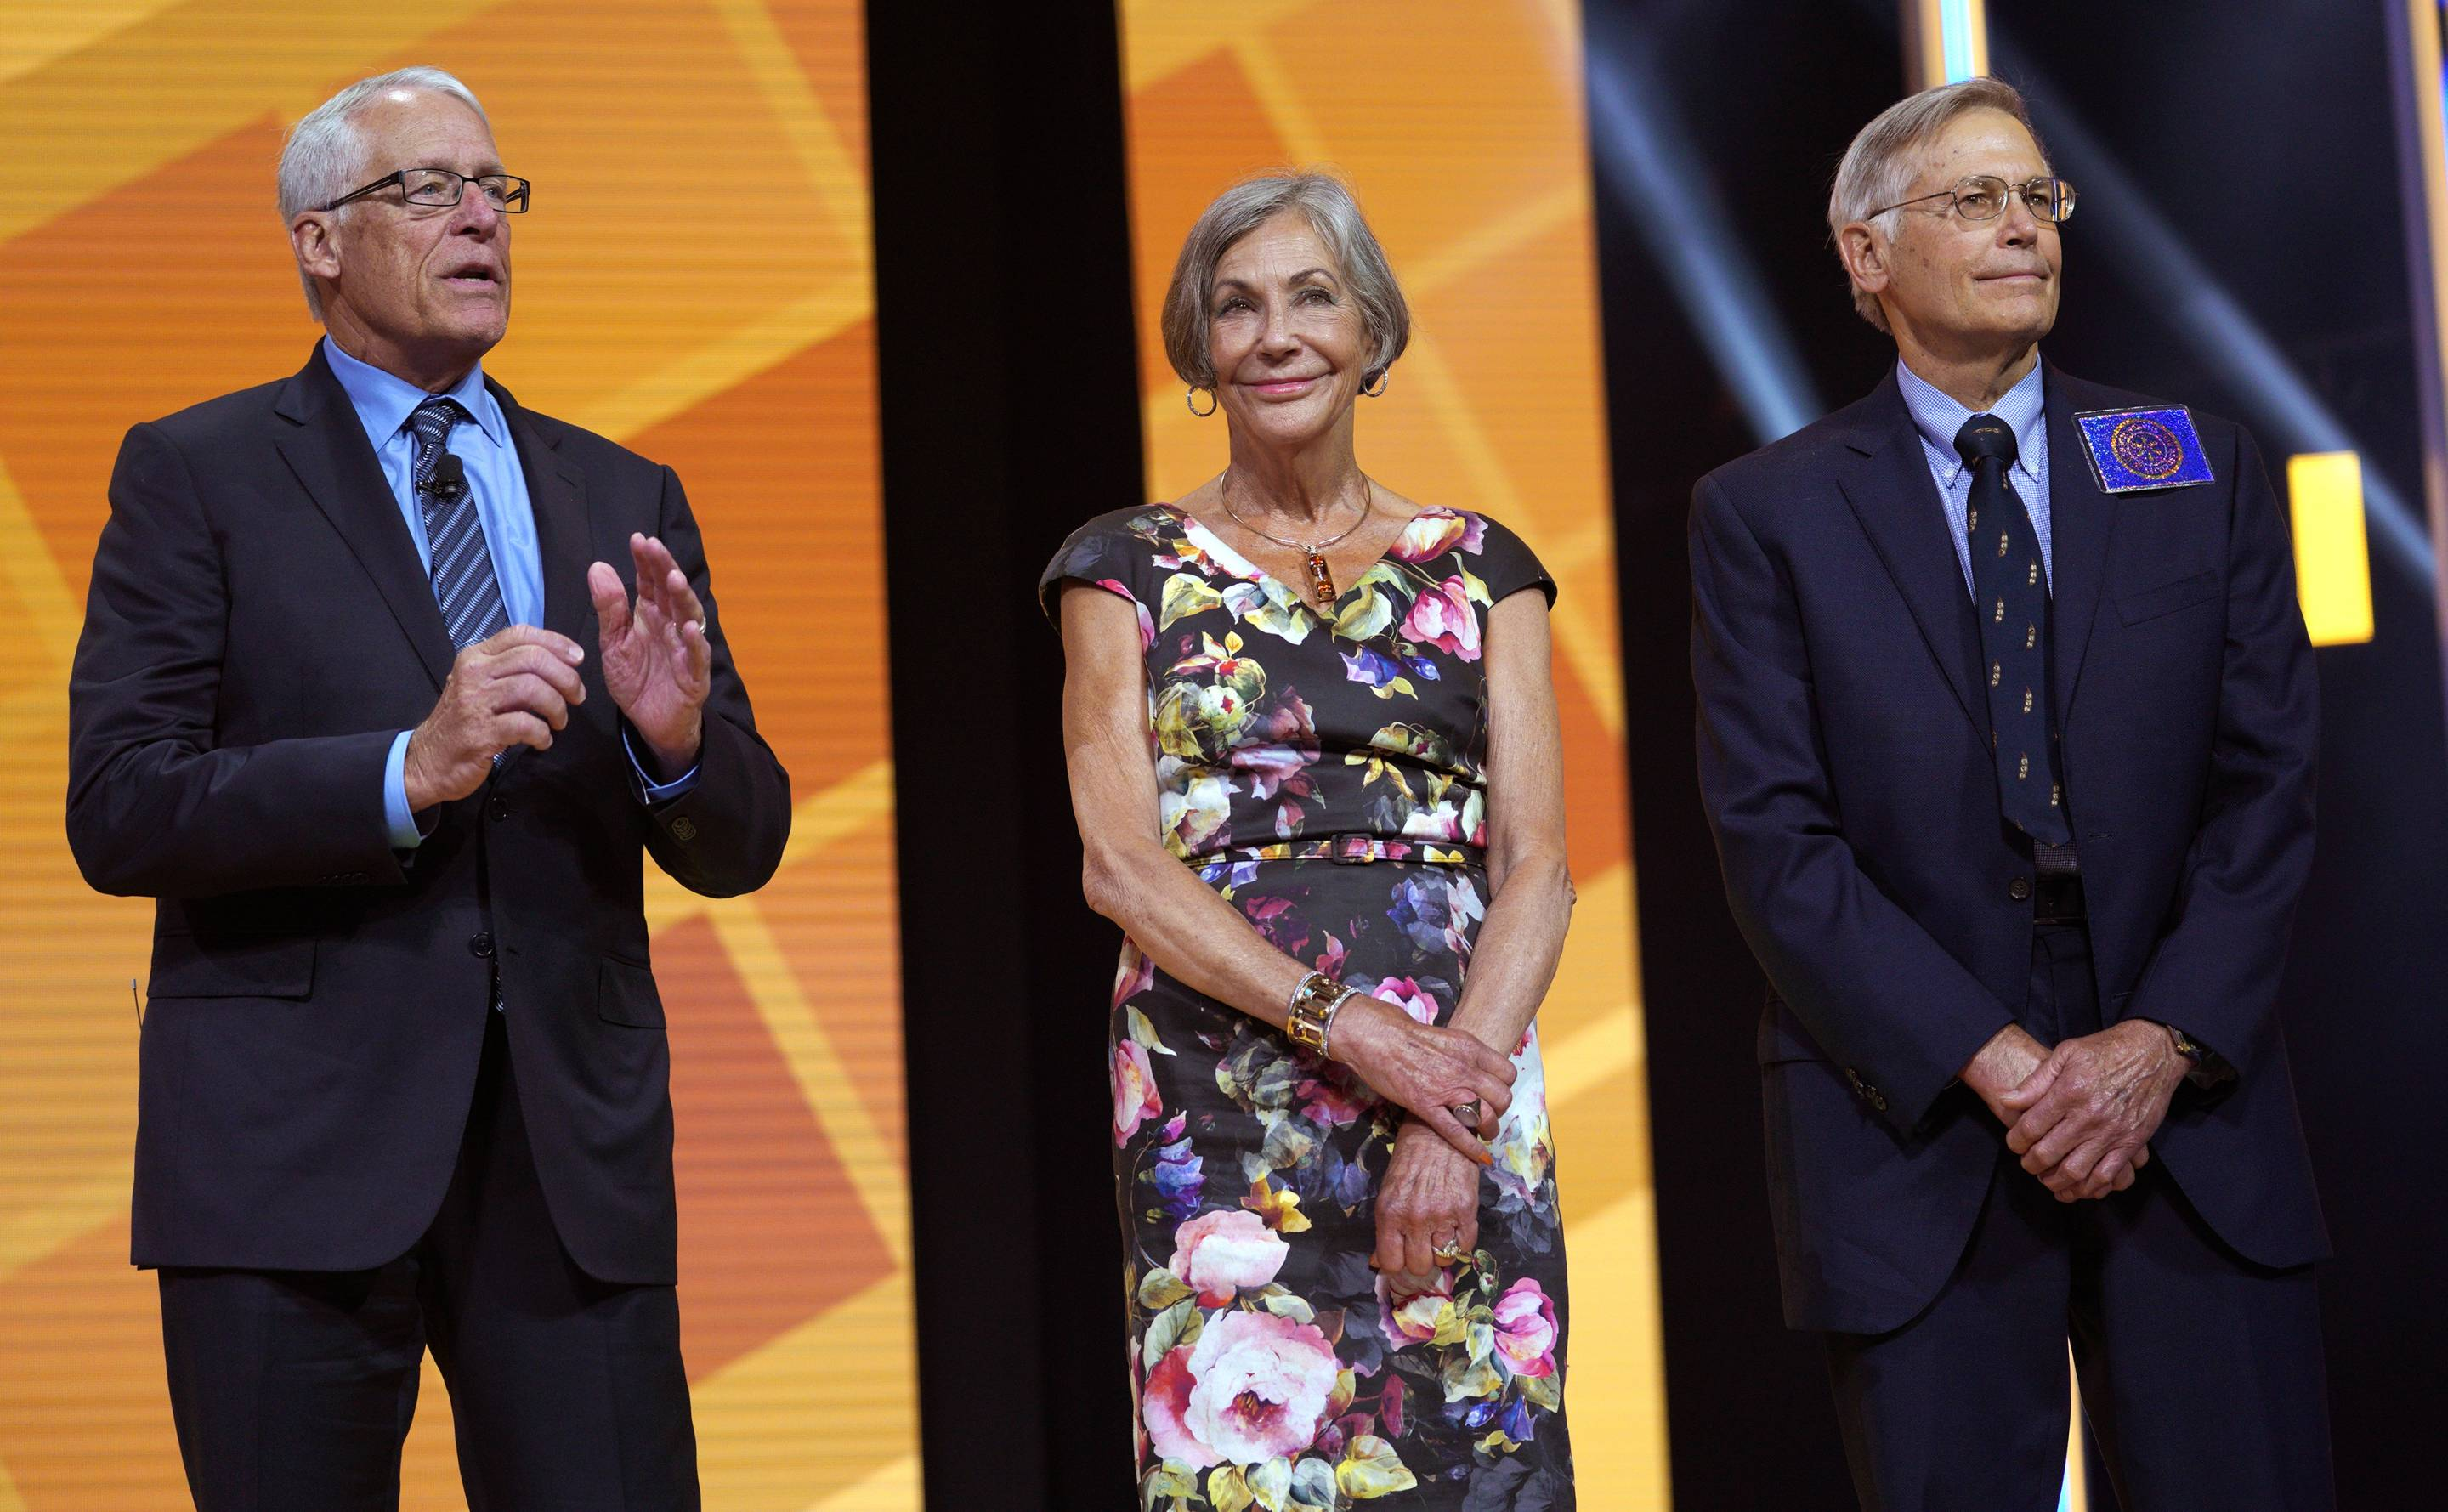 Members of the Walton family, Rob, Alice, and Jim (from left to right), speak during the annual Walmart shareholders meeting on June 1, 2018 in Fayetteville, Ark.